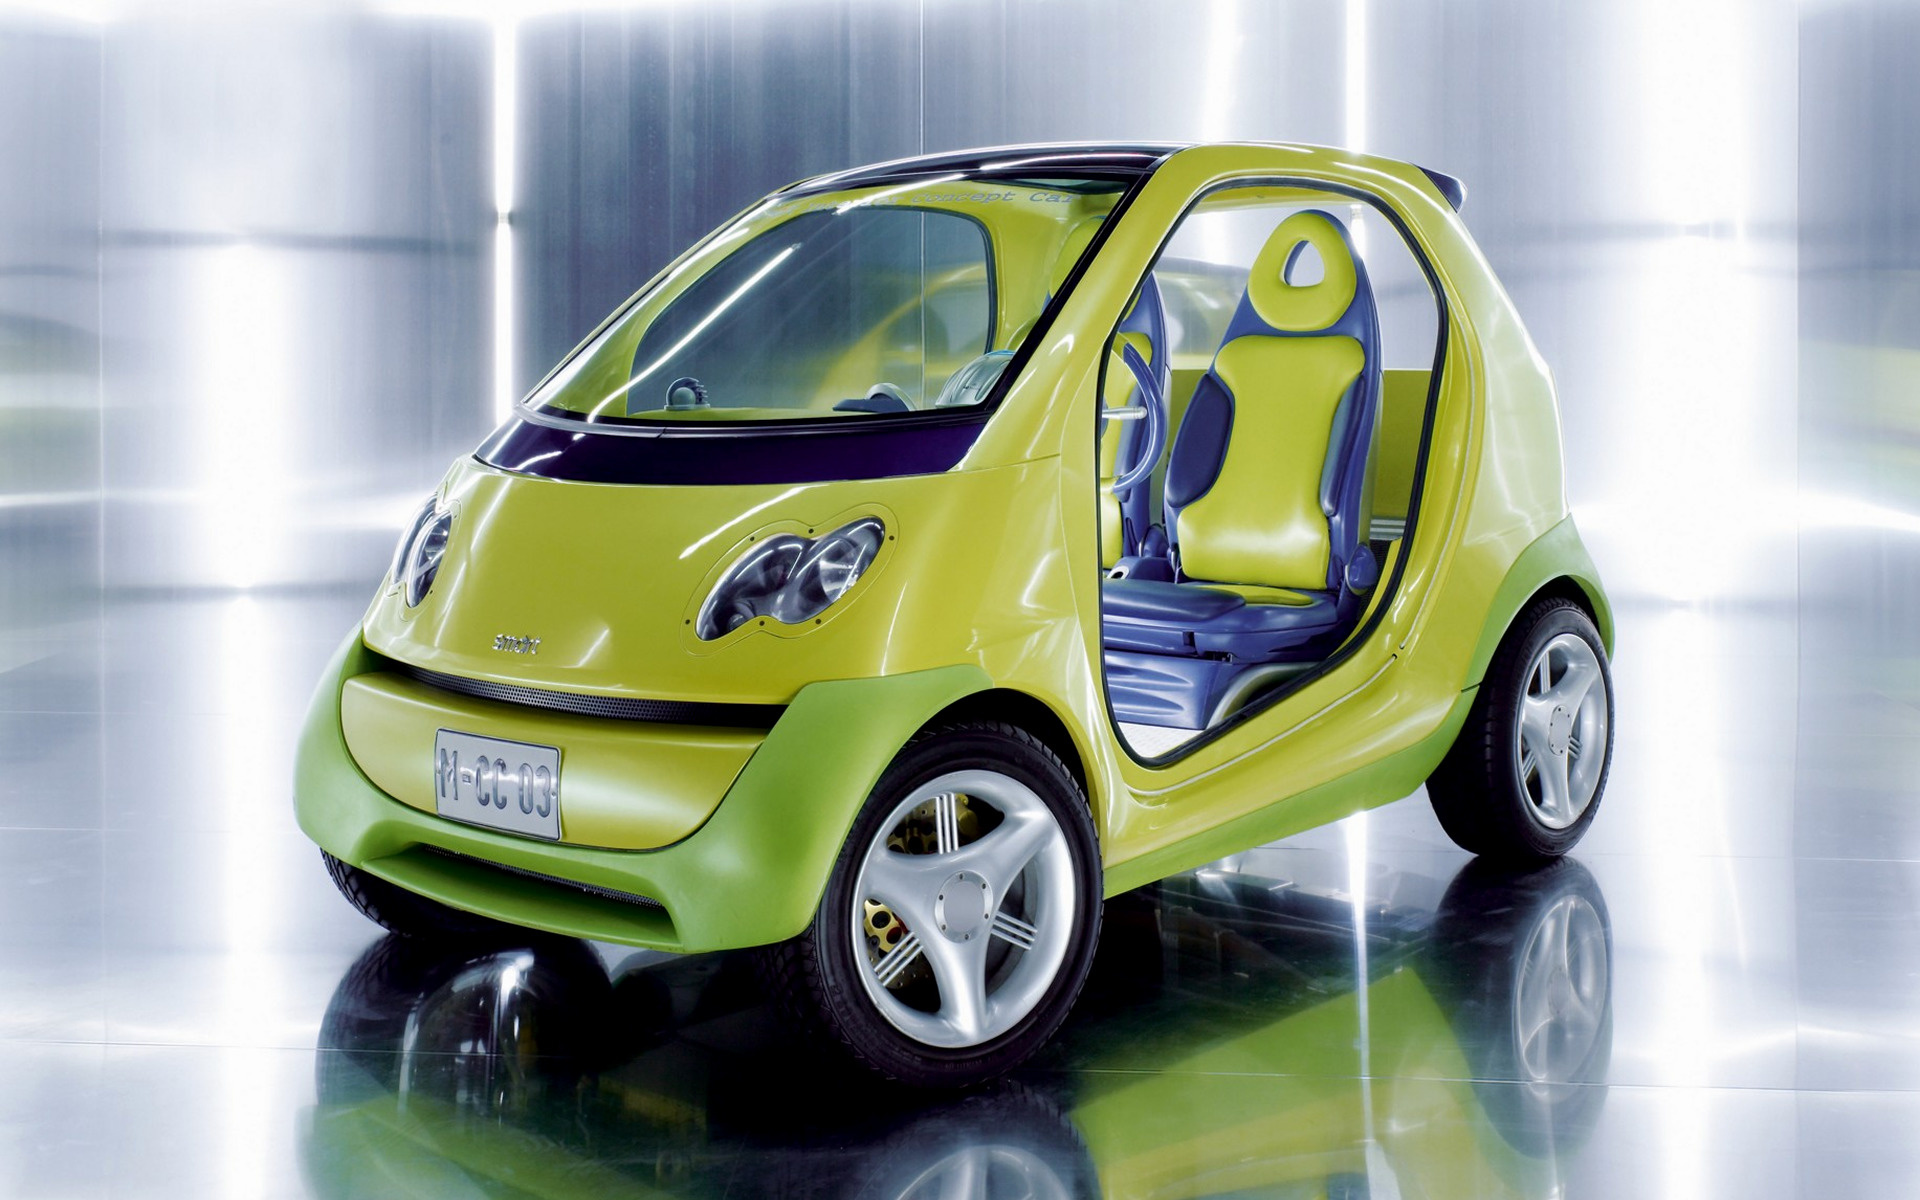 Hd Image Wallpaper Car Smart Atlanta Concept 1996 Wallpapers And Hd Images